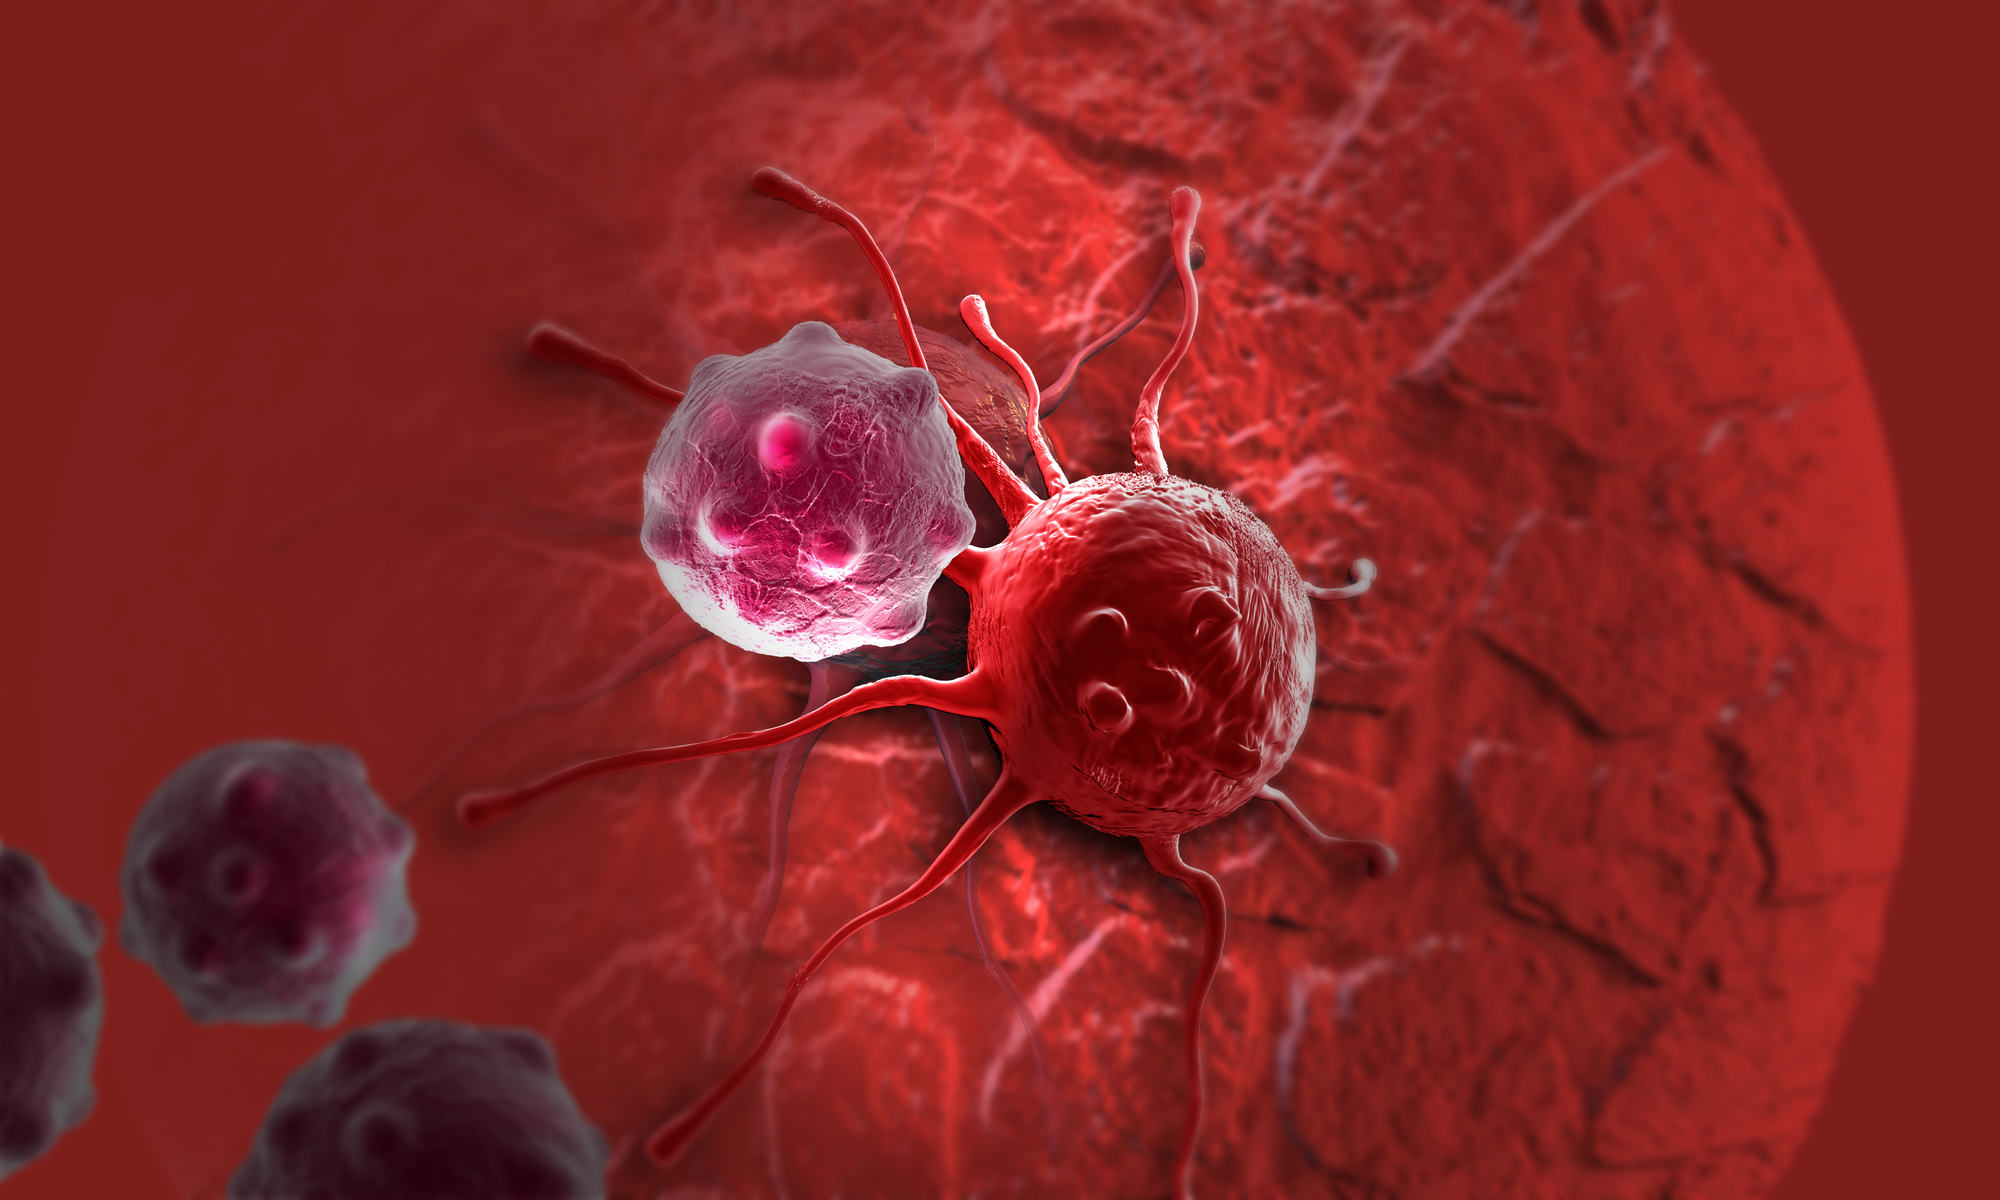 New research found dormant cancer cells can be reawakened by a process that is triggered by certain stress hormones